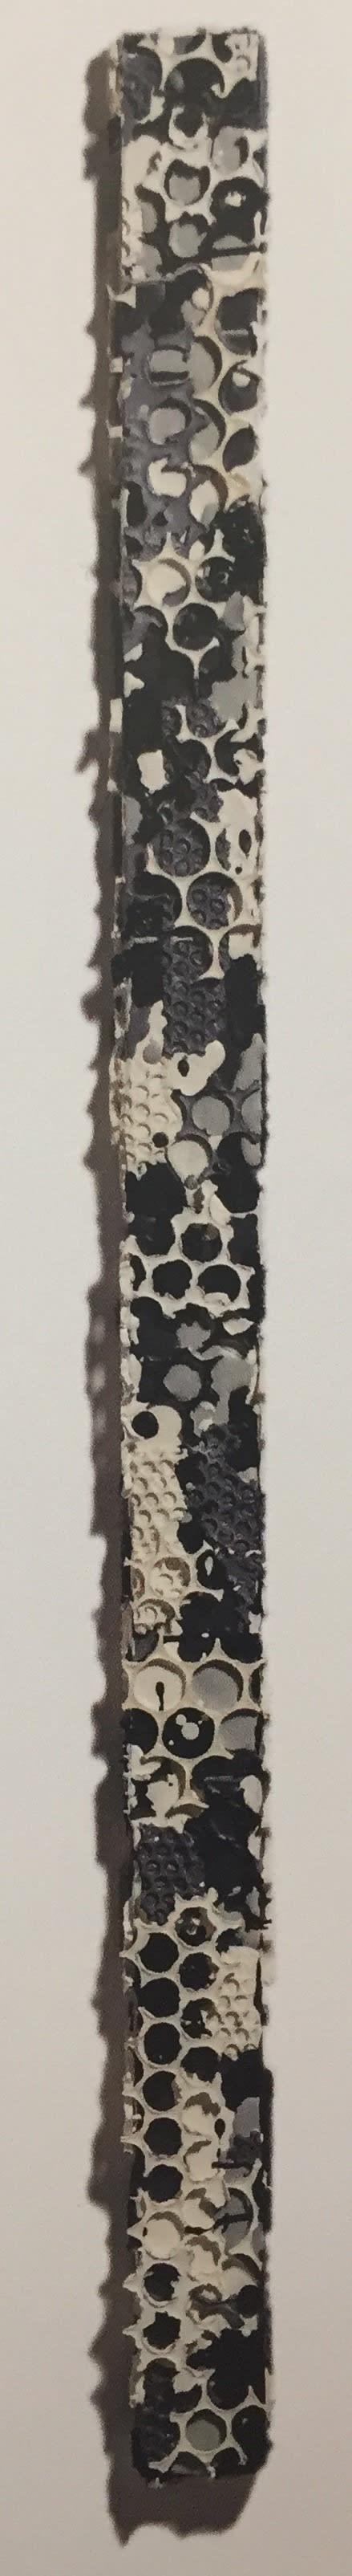 Martin Kline, Black White Grey Collage Stick, 2018